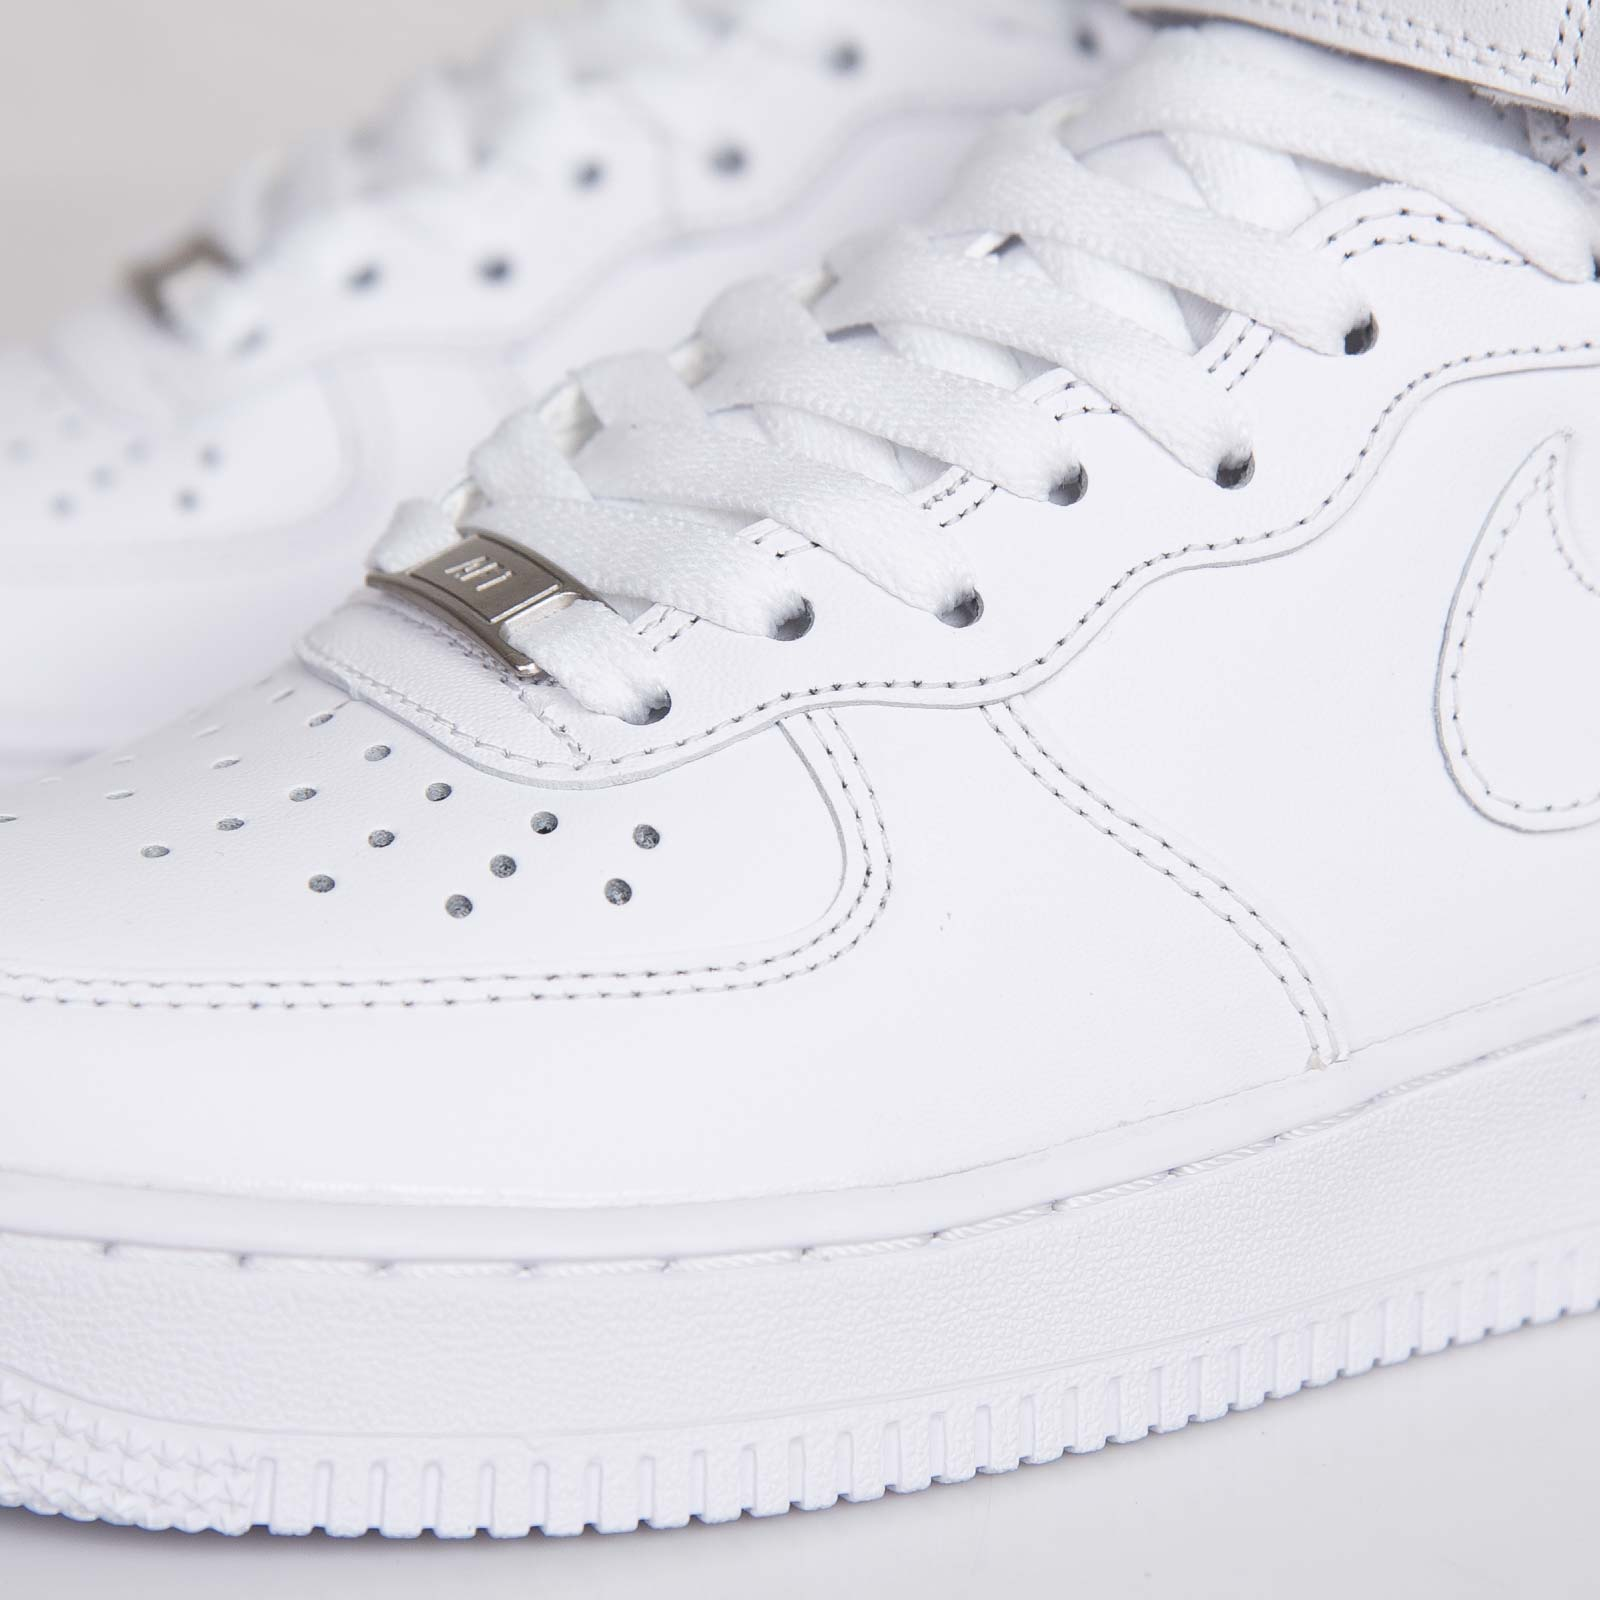 pretty nice 2be0c 9cd95 Nike Wmns Air Force 1 Mid 07 LE - 366731-100 - Sneakersnstuff   sneakers    streetwear online since 1999